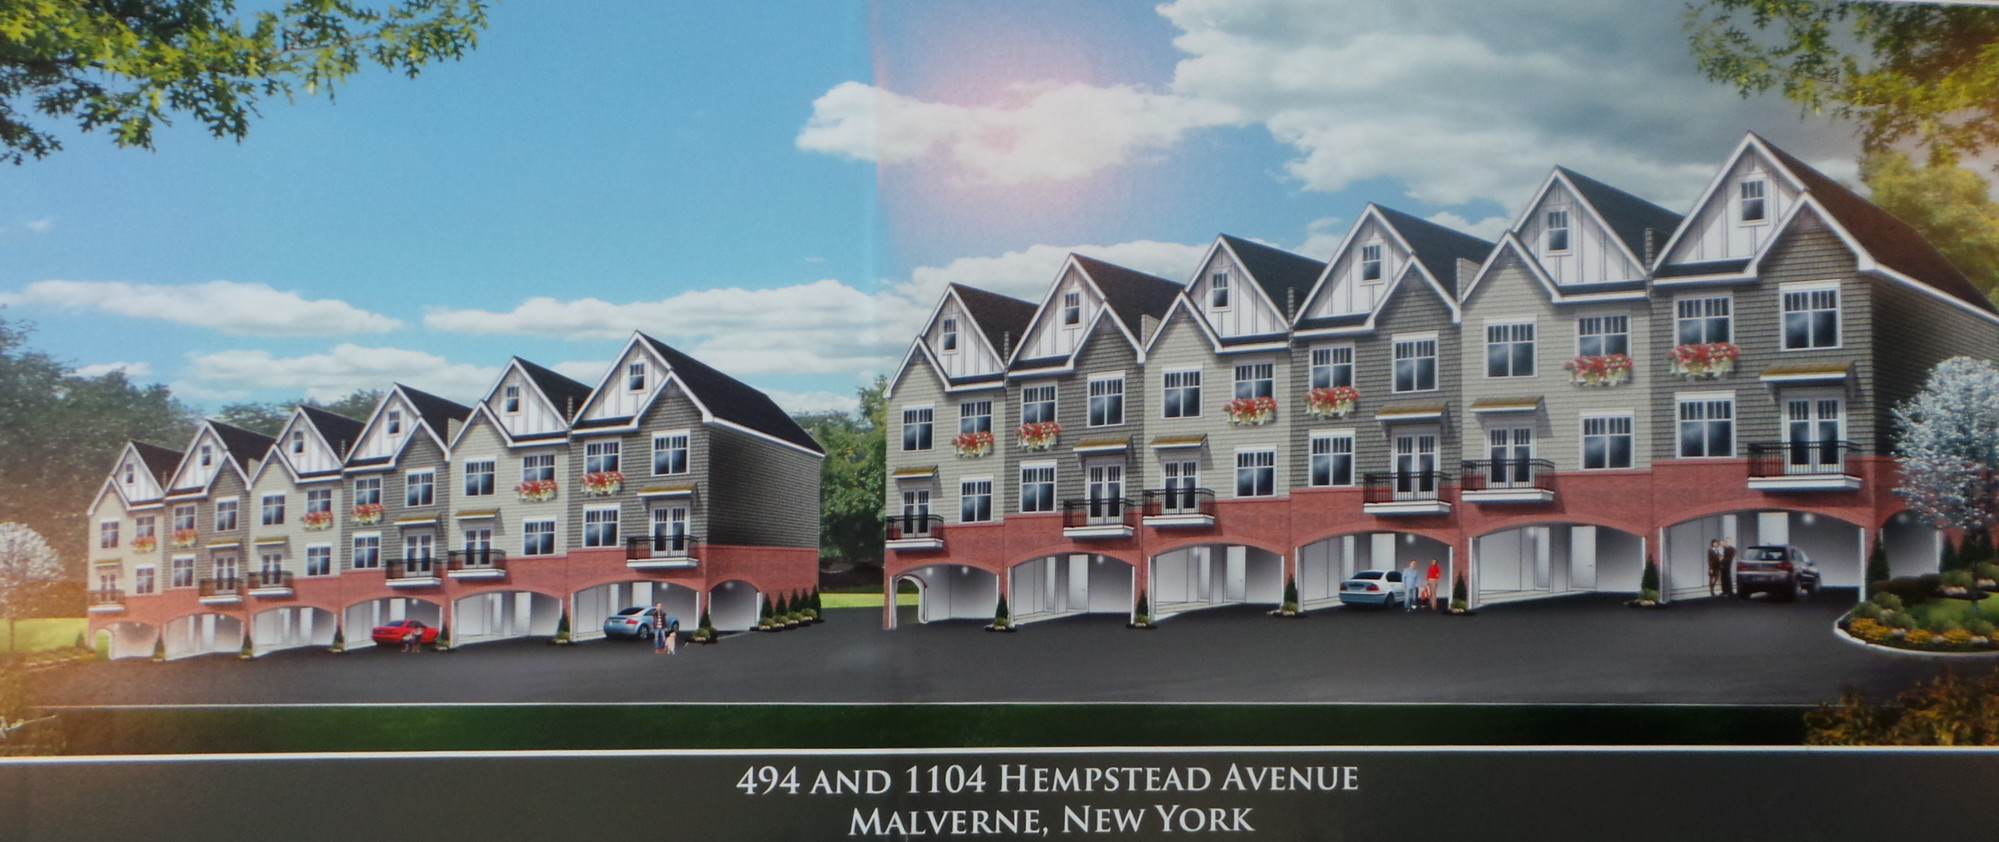 an artist's rendering of the proposed development shows two buildings containing 